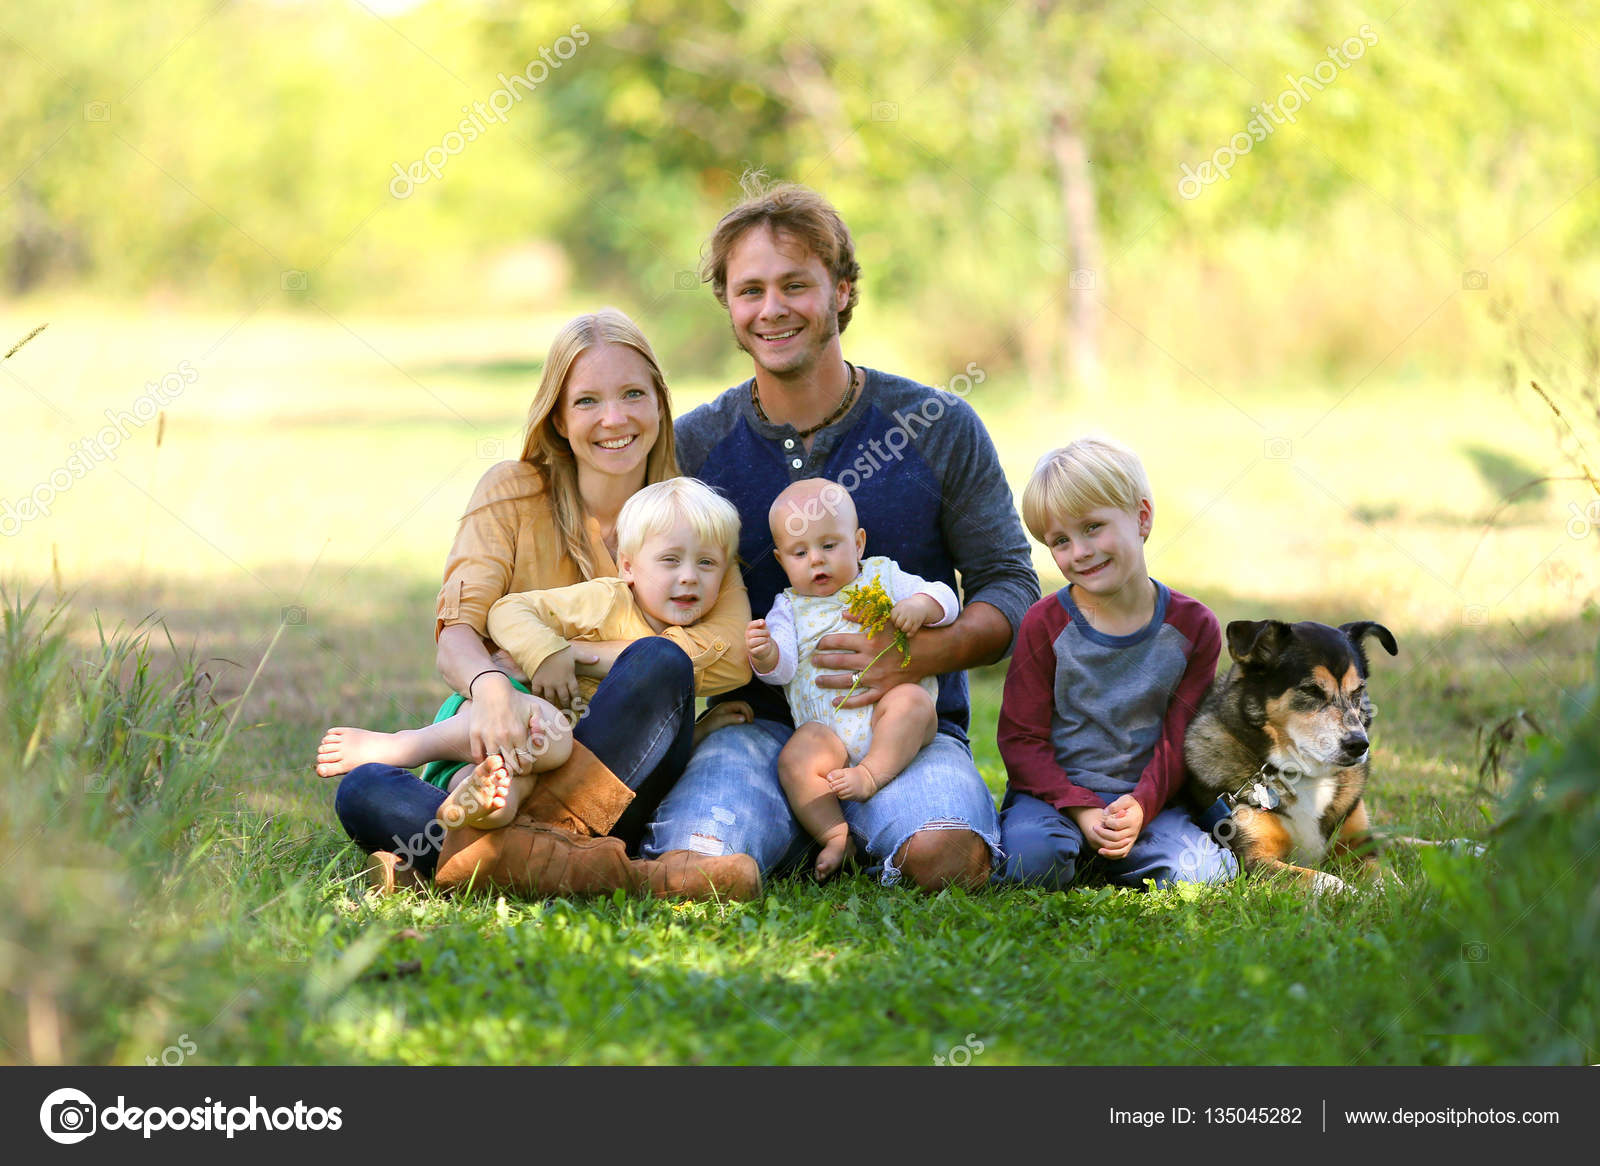 Happy Family Of 5 People And Dog In Sunny Garden Mdash Stock